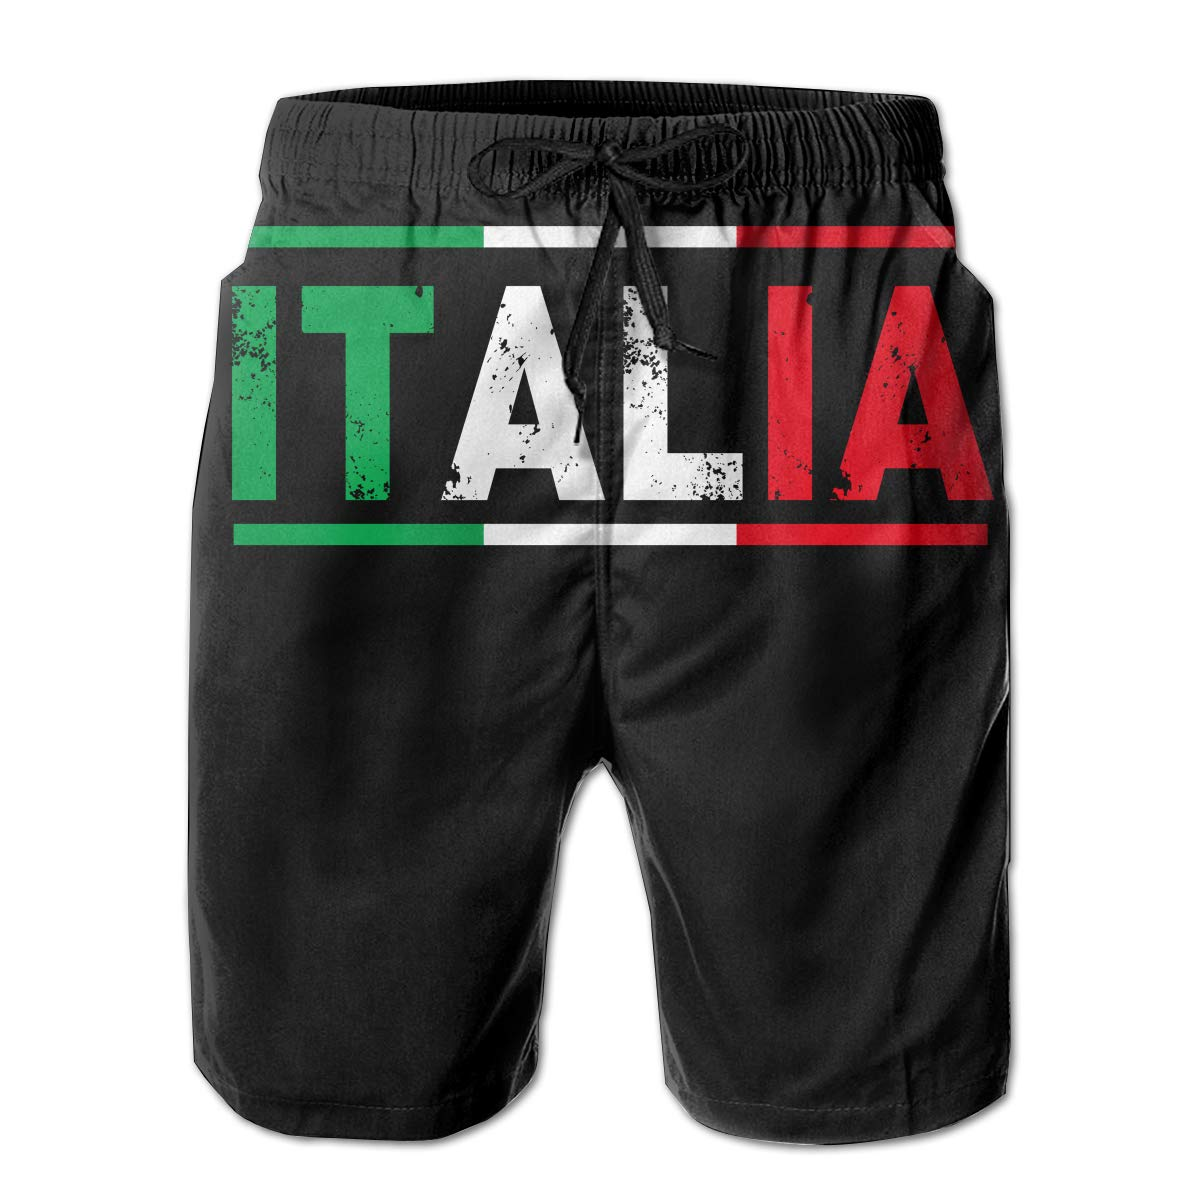 JF-X Italian Flag Mens Summer Beach Surf Board Shorts Quick Dry Swimming Trunks Casual Loose Sleep Short Pants